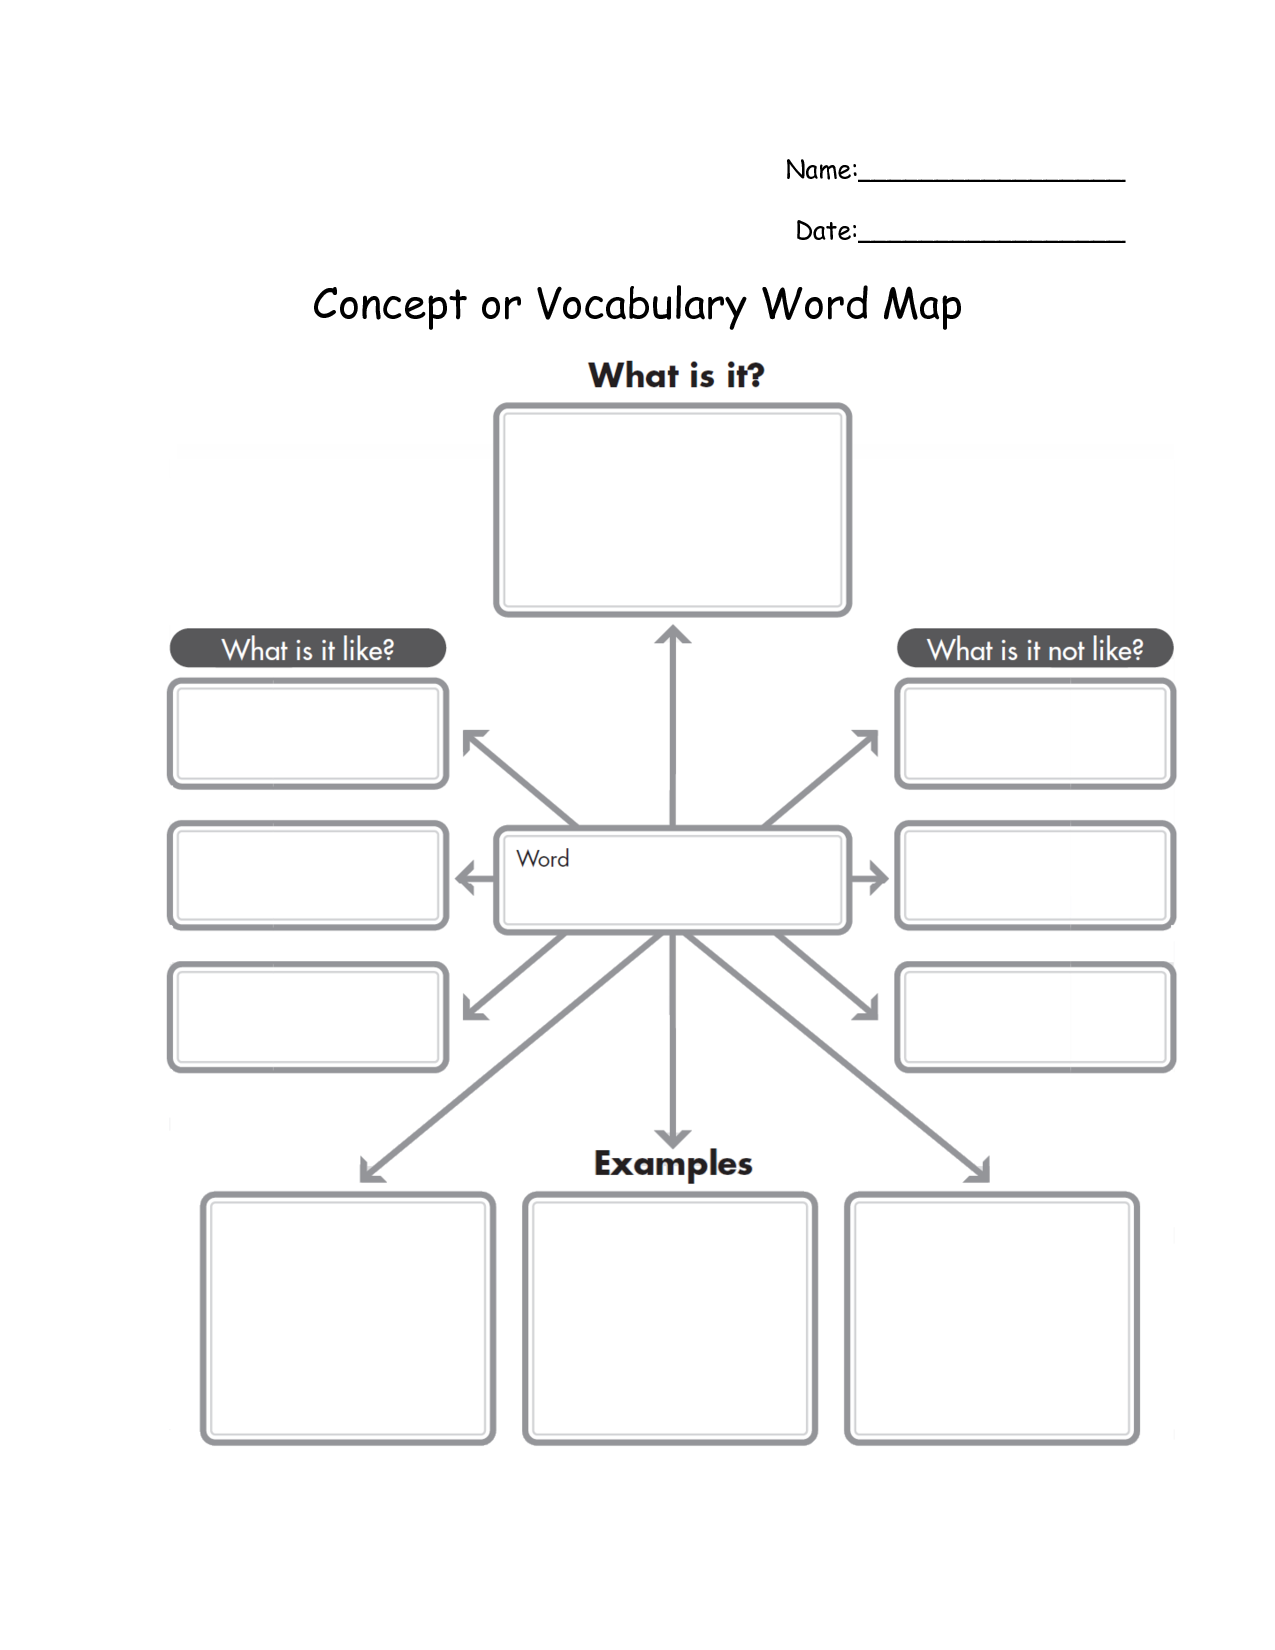 Avid Vocabulary Concept Map.98 Blank Word Map Free Blank Word Map Templates Concept Map